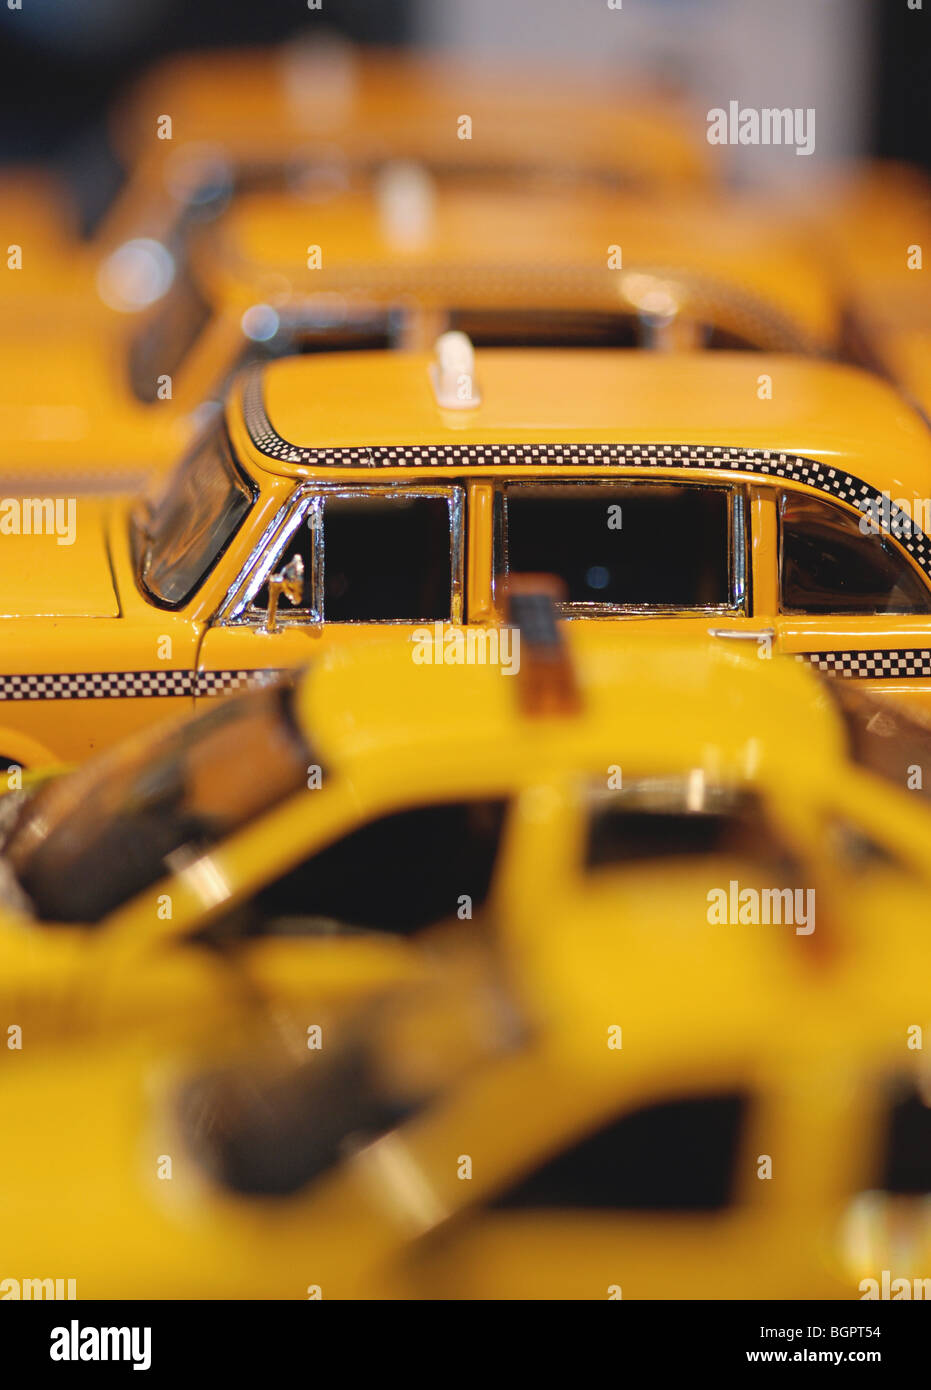 Macro close-up of a row of toy taxis in New York Stock Photo